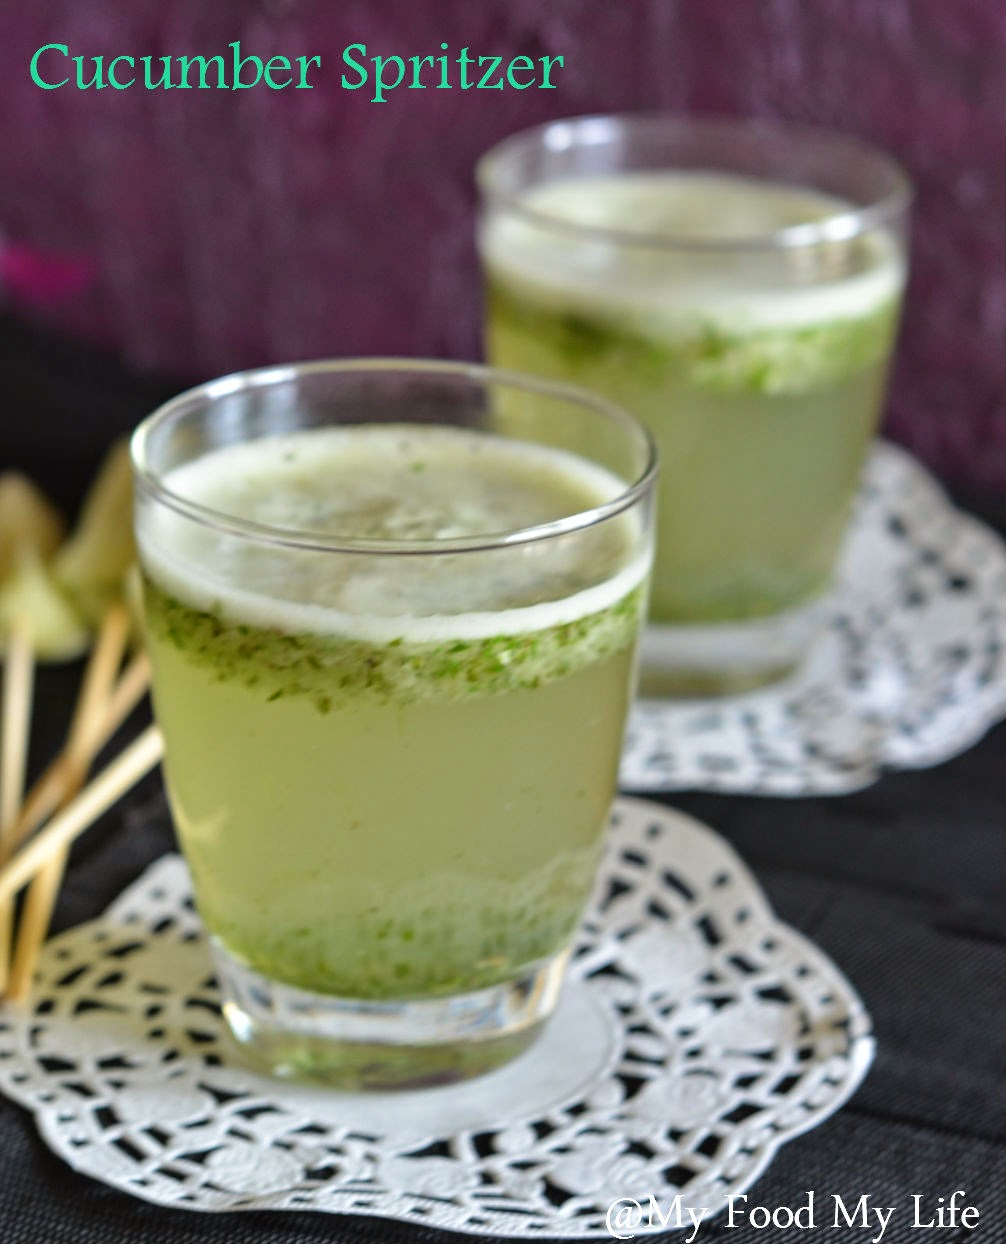 My Food My Life : Summer Cooler - Cucumber Spritzer